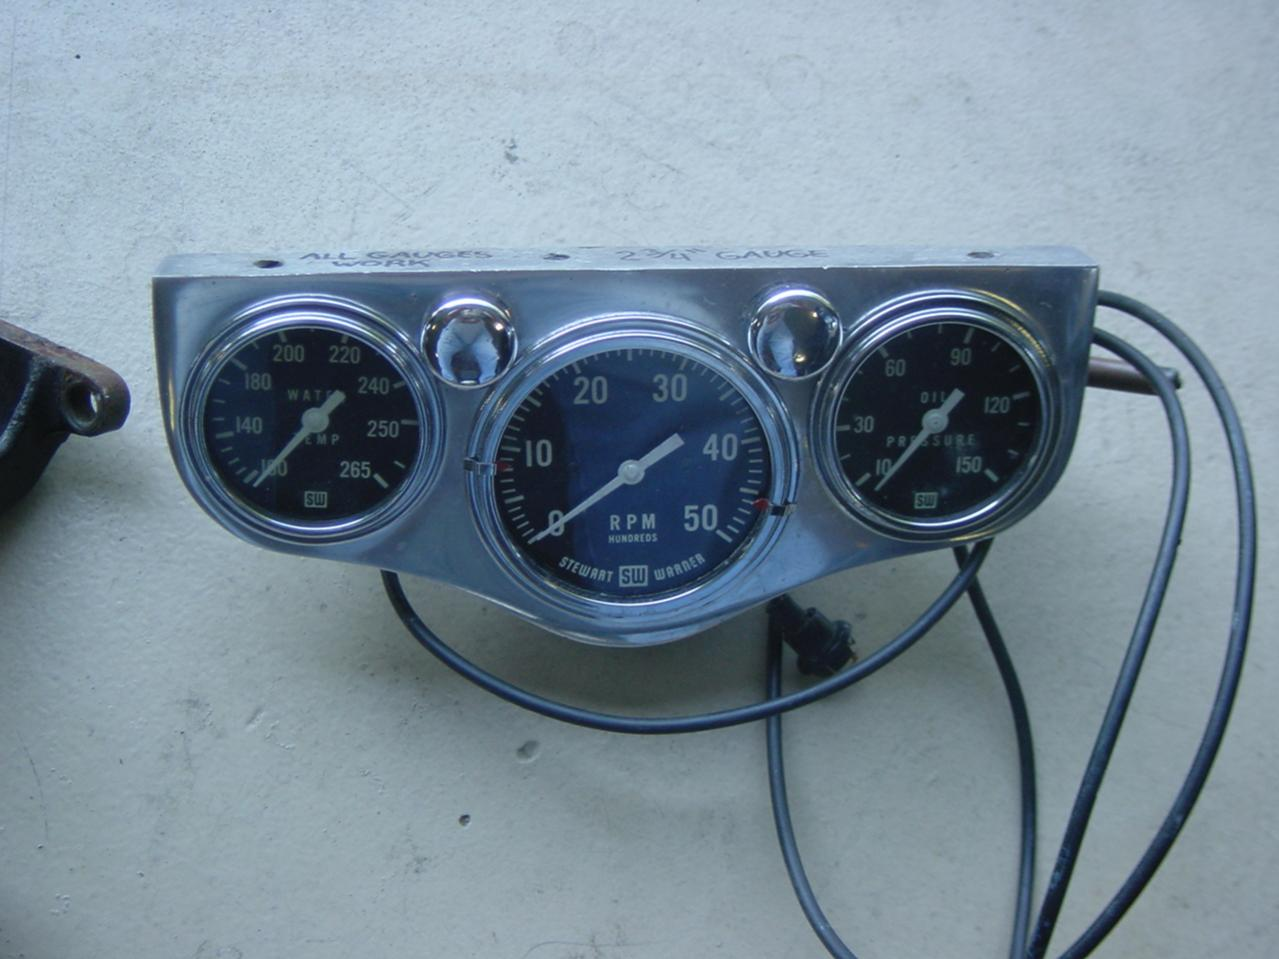 options for hooking up a mechanical tach on a flathead the h a m b farmall super a 12 volt wire when you do find your mechanical tach drive this is also what you might be hunting for this is a s w mechanical tach in a heavy eelco alumn base with the